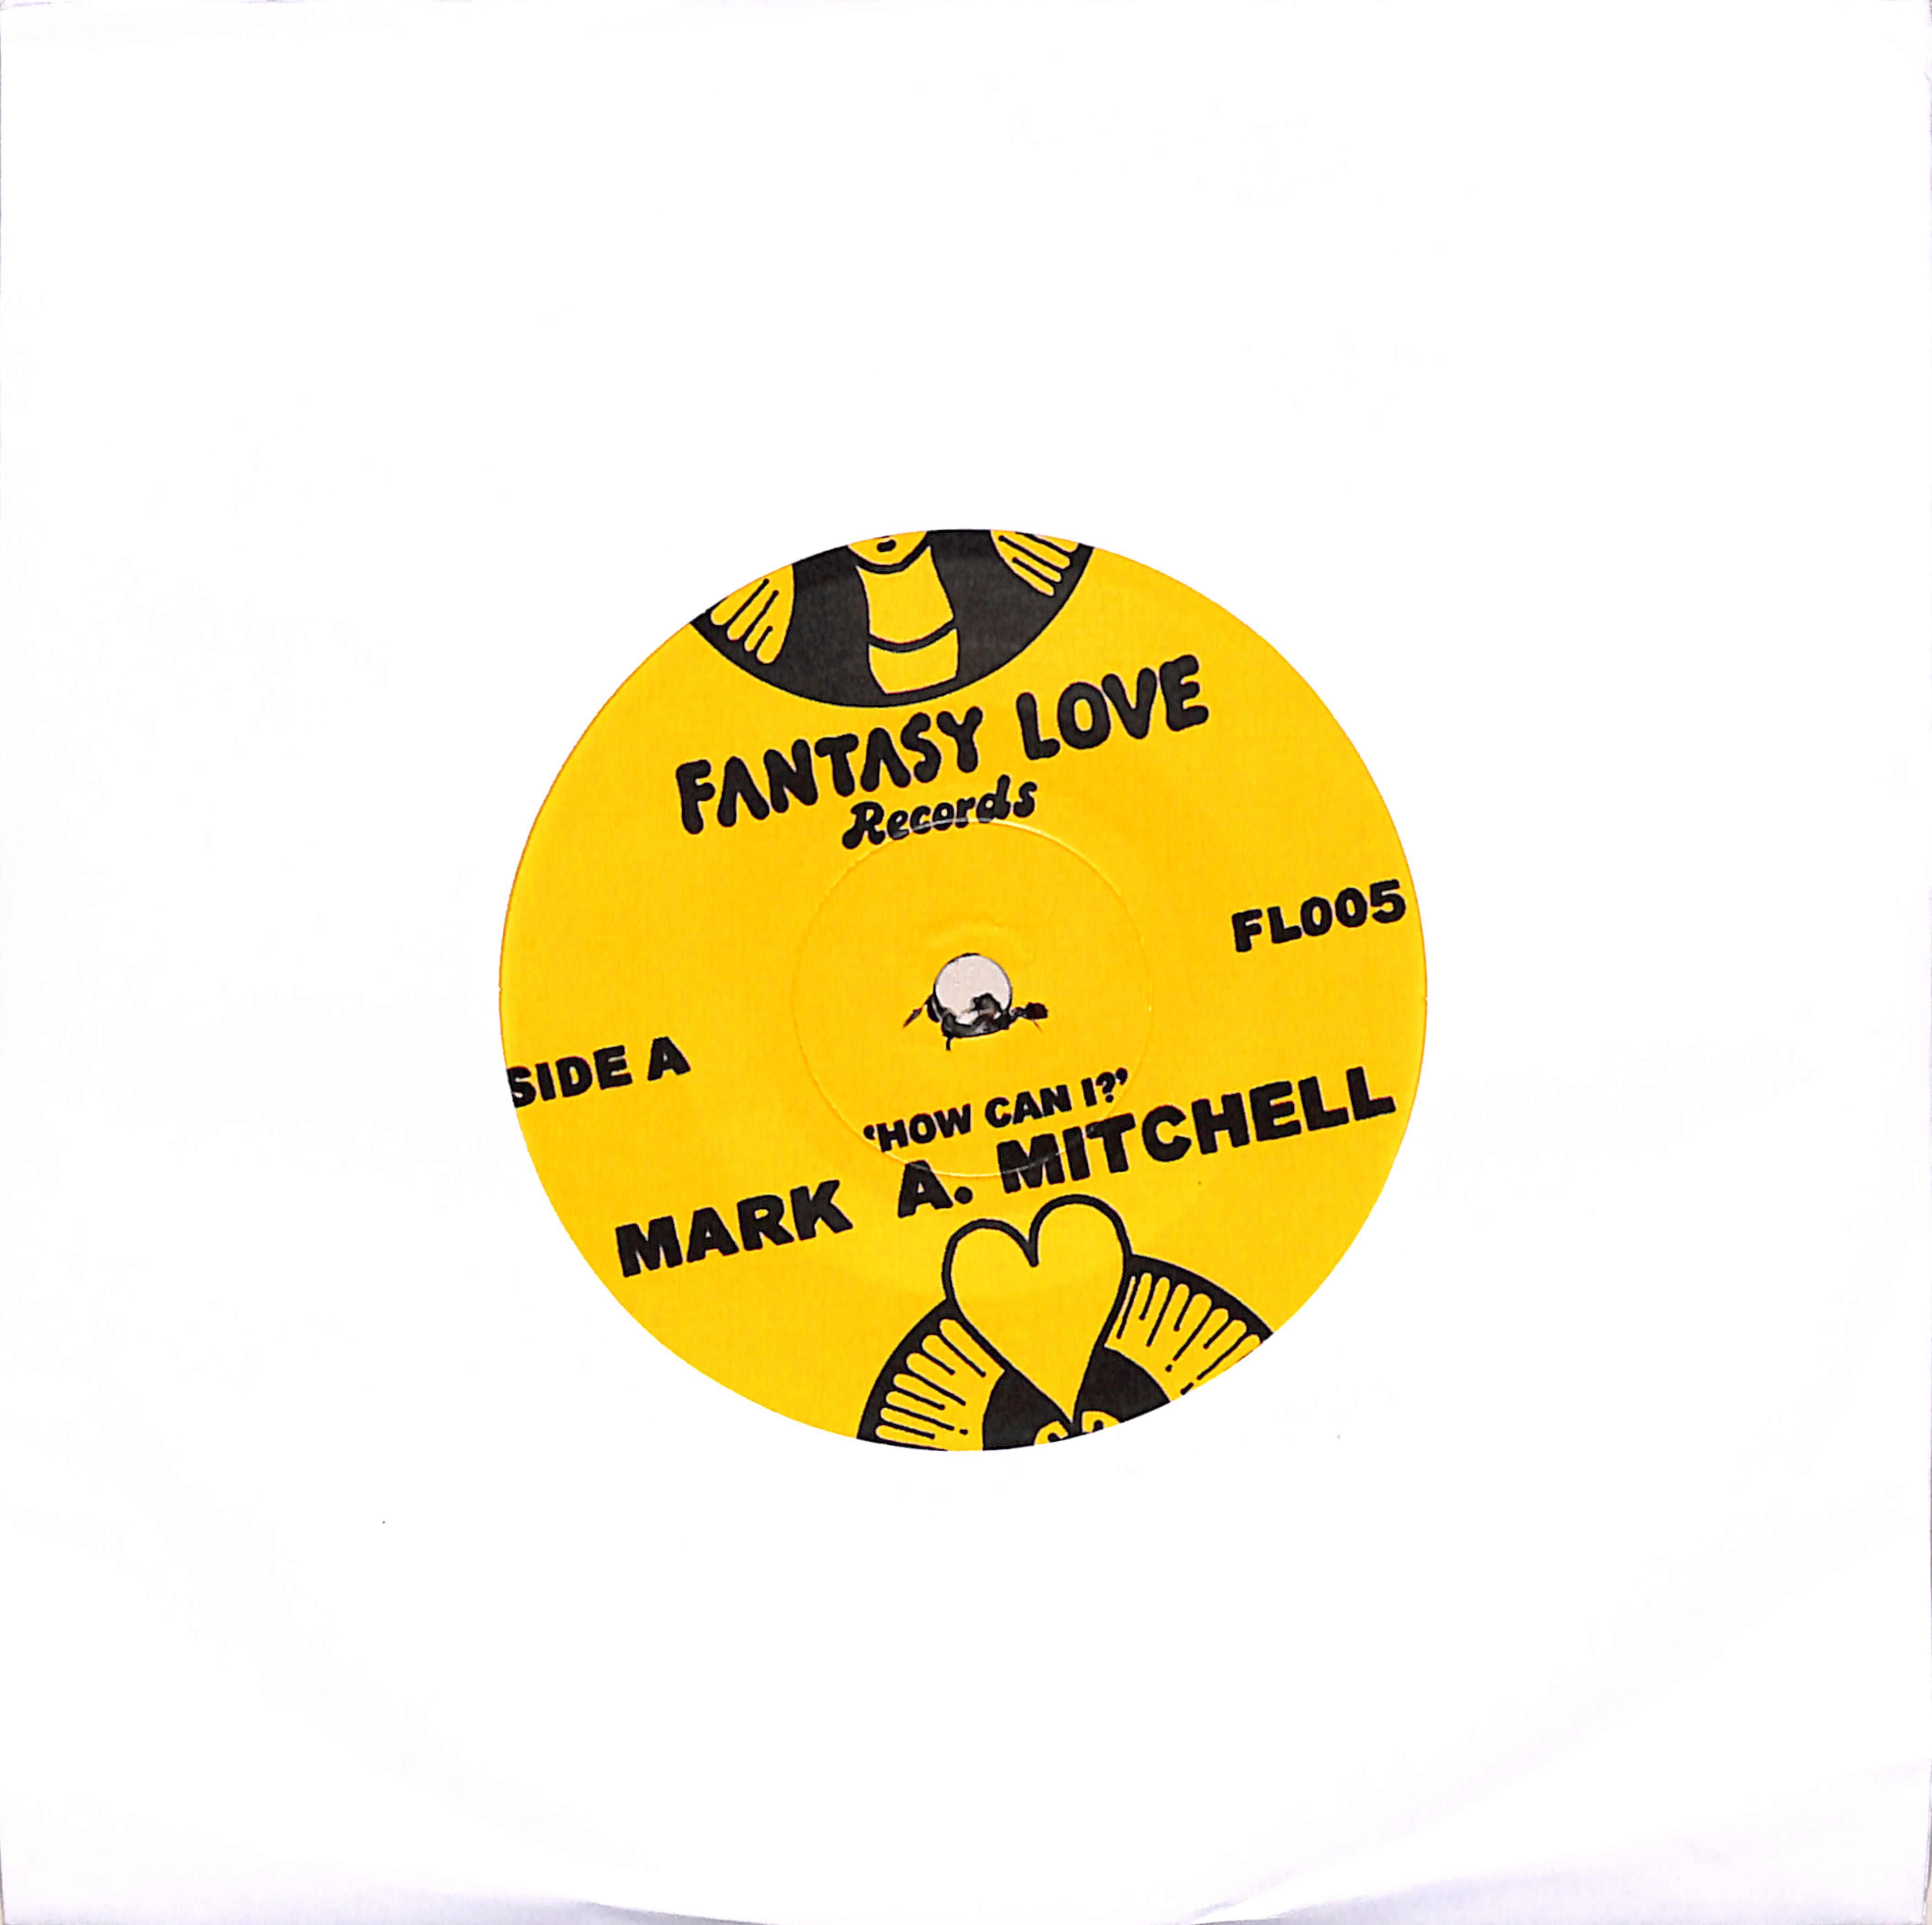 Mark A. Mitchell - HOW CAN I / ALL YOUR LOVE